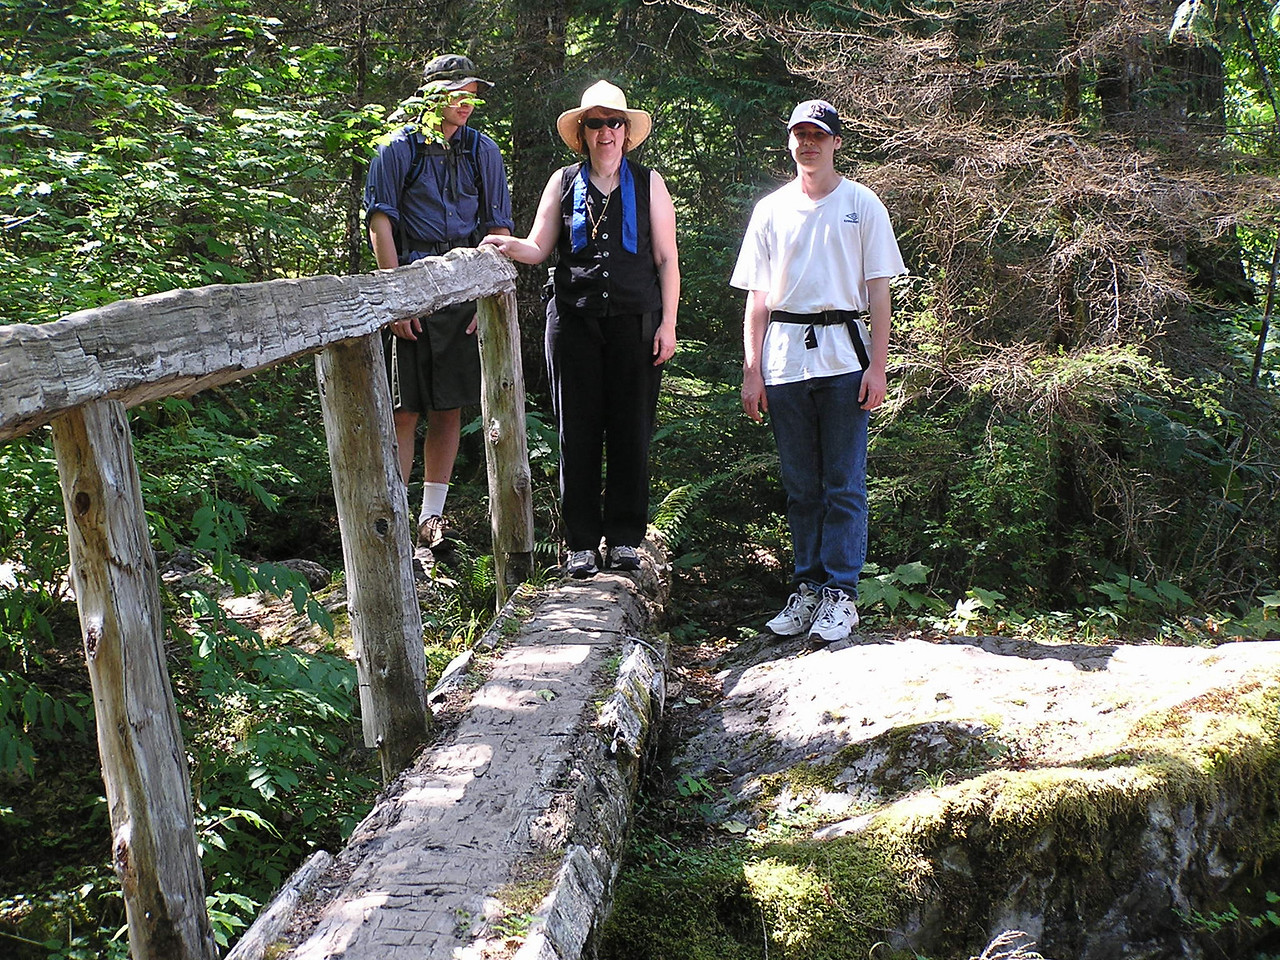 04-08-16 Hike to Trout Lake 014